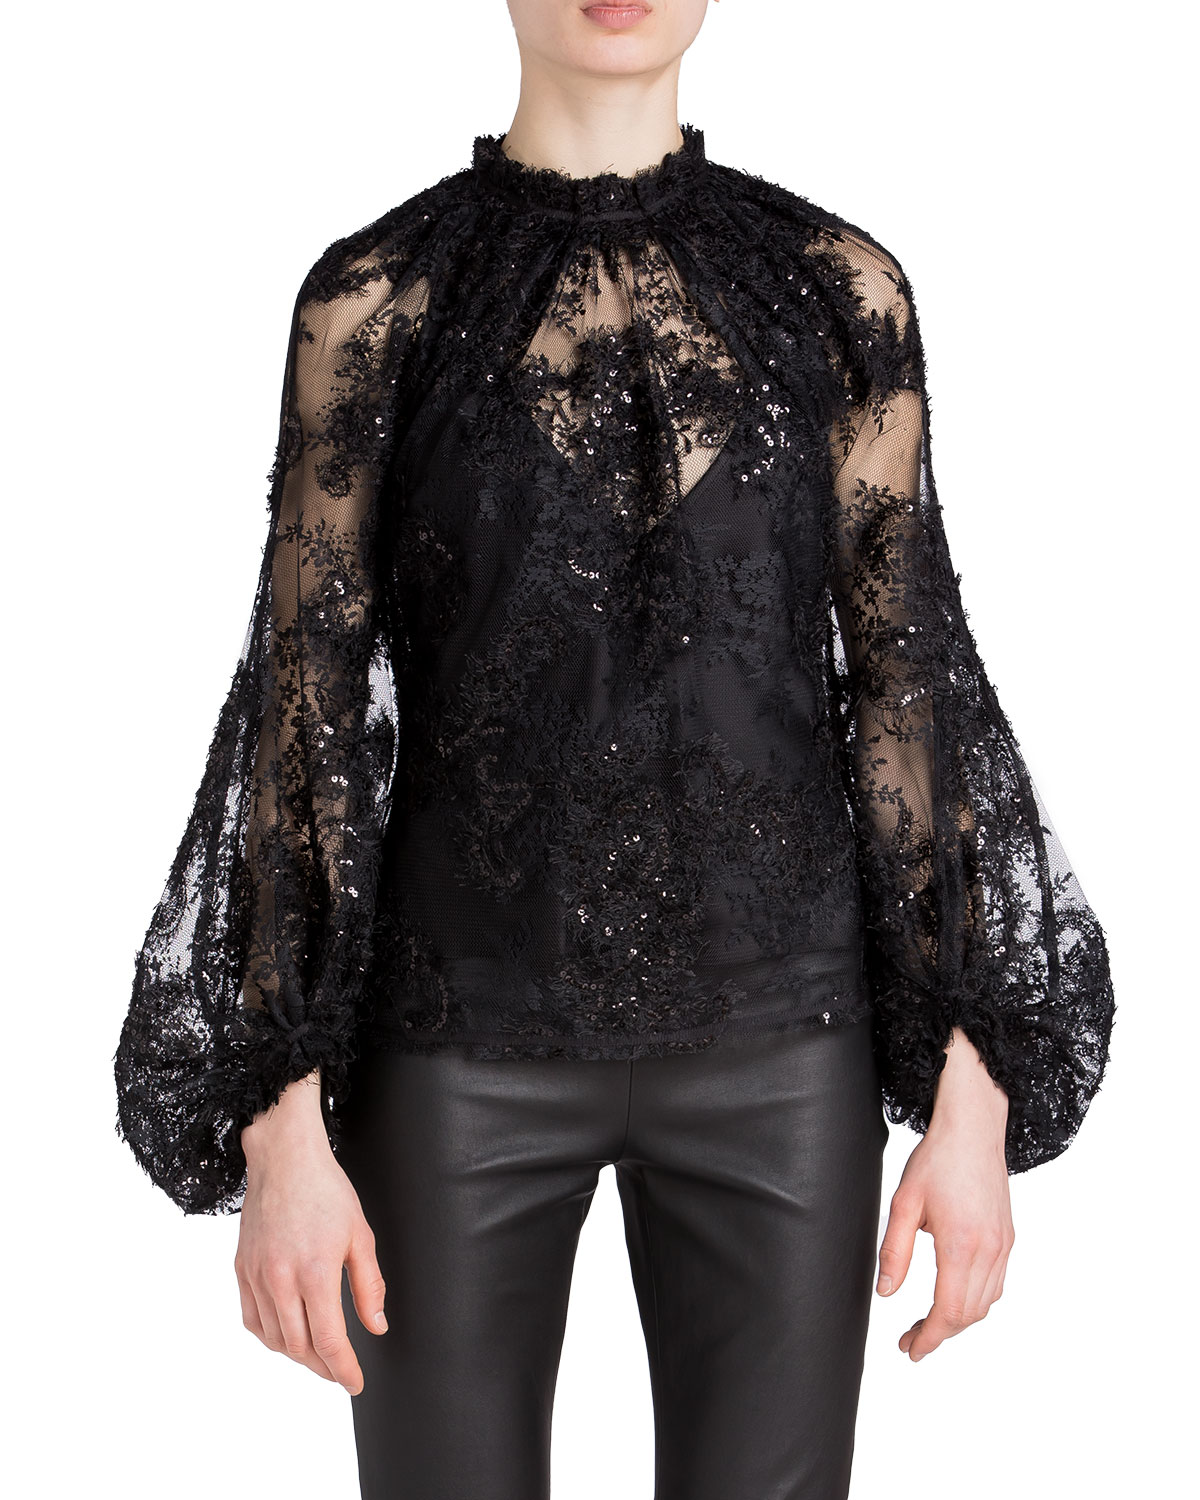 UNTTLD Billowing Sleeve Lace Top